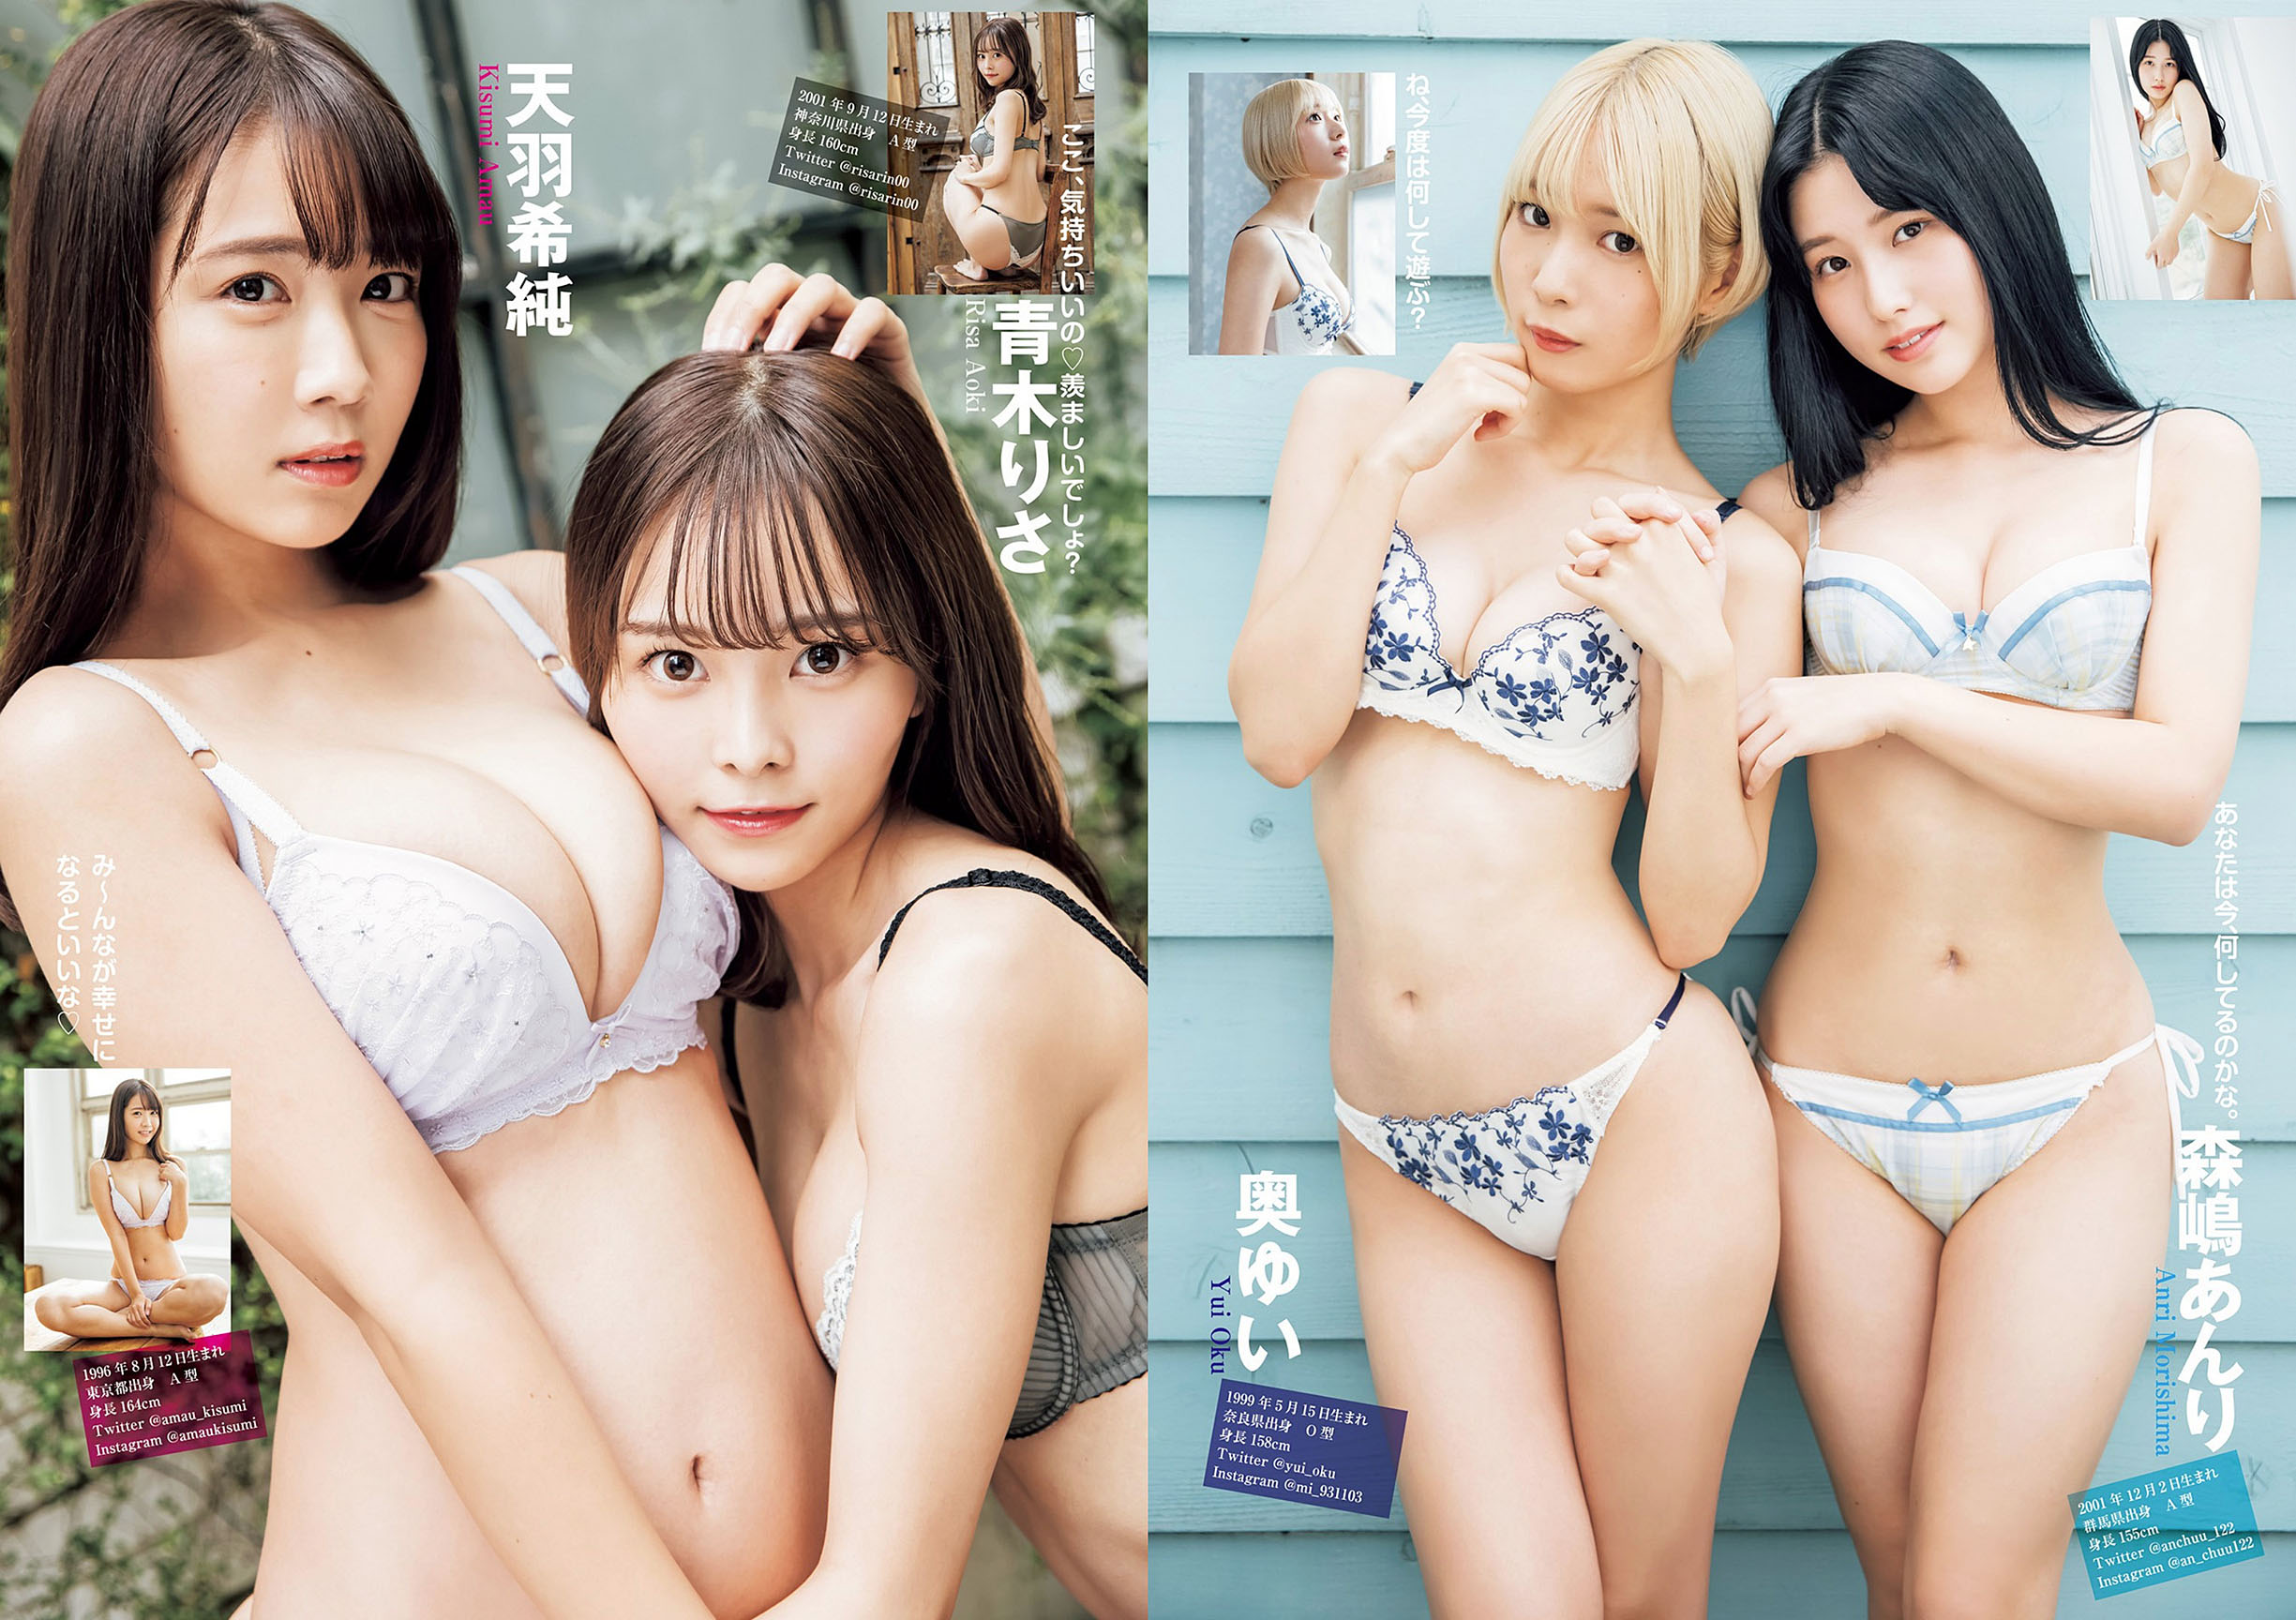 Toomi and Androids Young Jump 210101 08.jpg